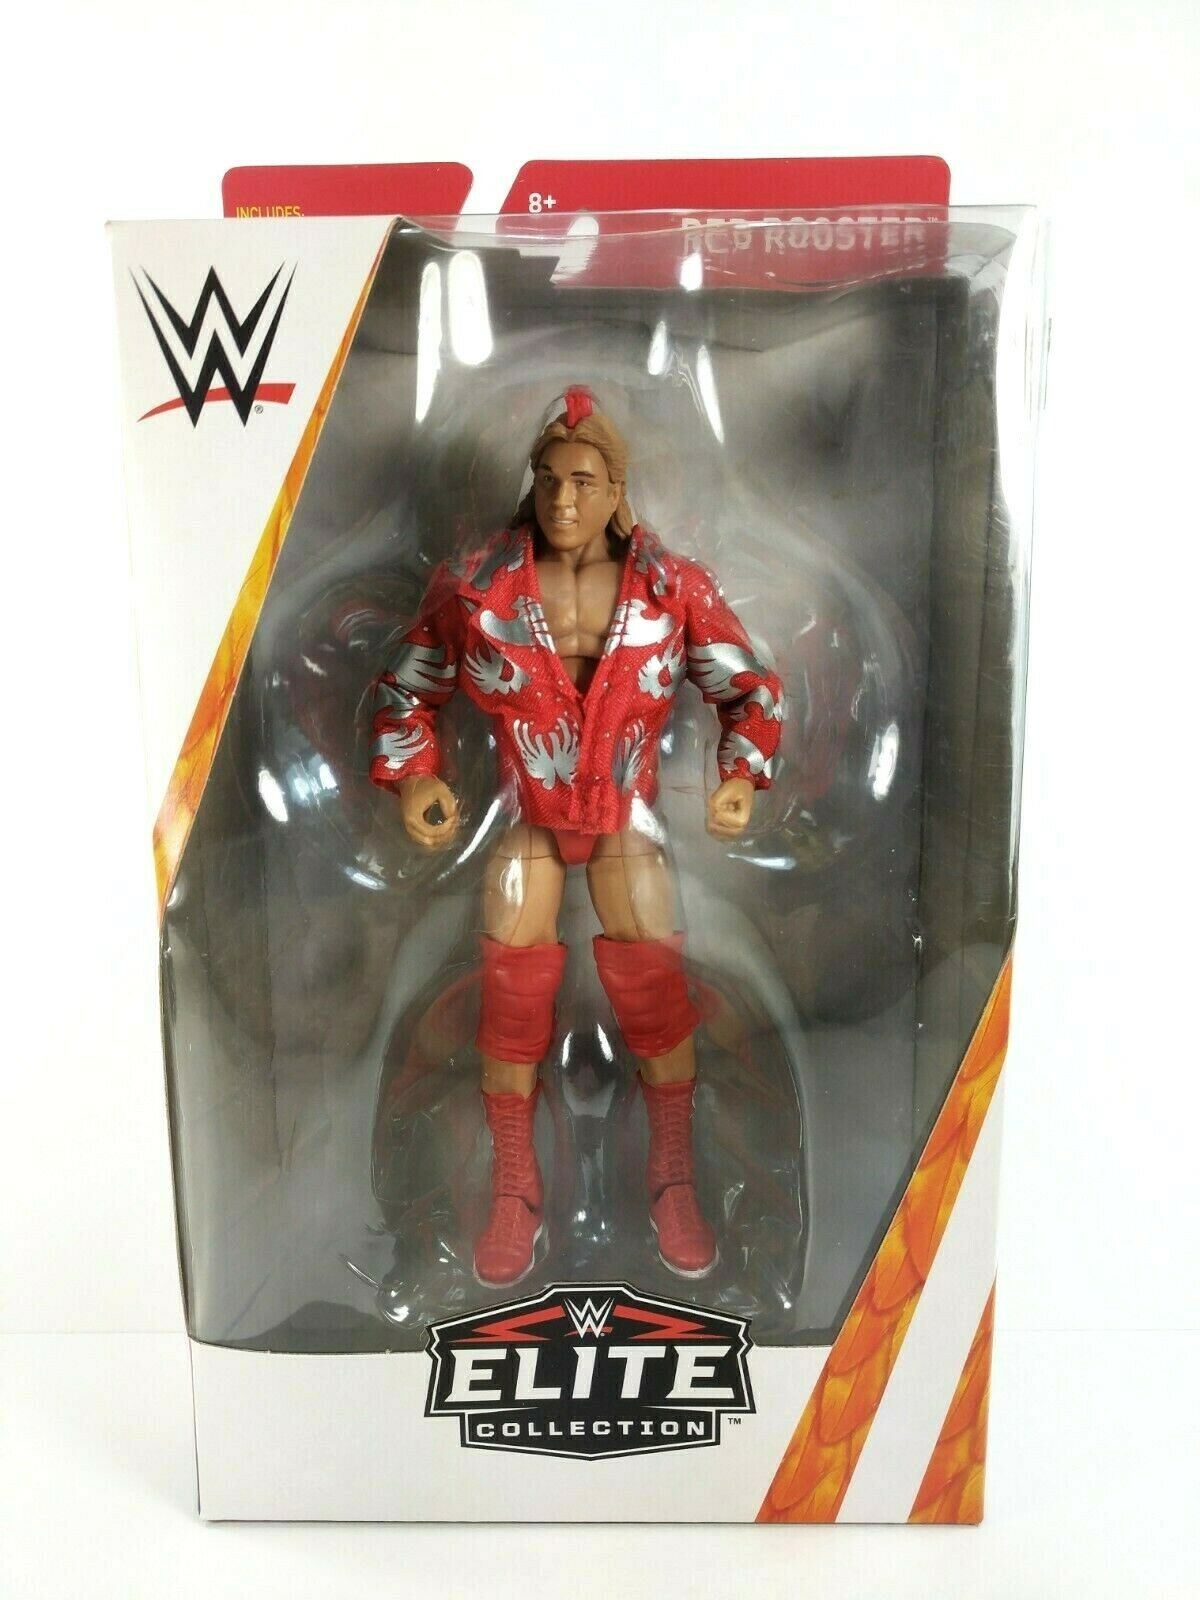 WWE Mattel - Elite Collection TARGET EXCLUSIVE - rot Rooster Figure 6  NEW